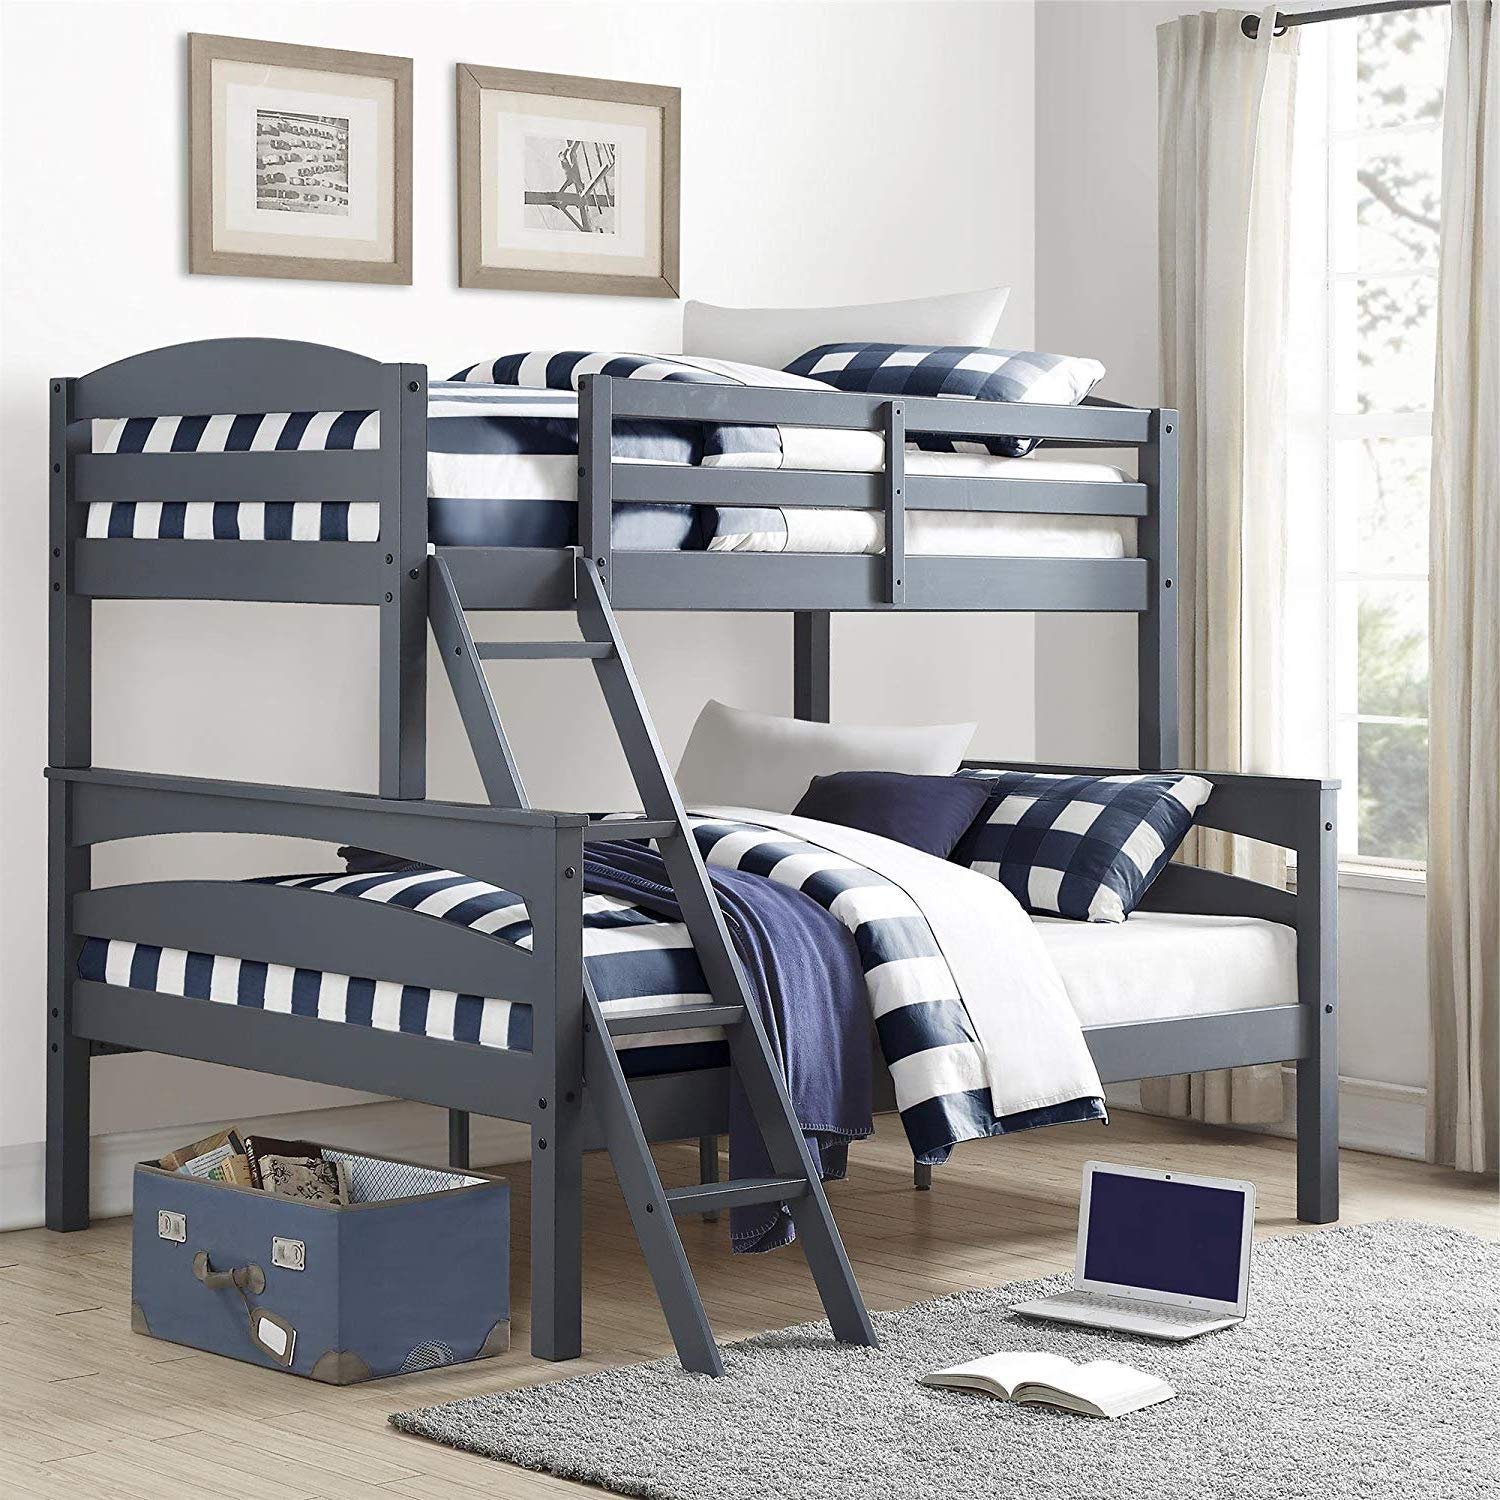 Bunk Beds for Kids Toddler Twin Over Full Wood Gray Your Child Will Sleep in Style and Great Solution for Your Space Saving Needs by HomeTeks